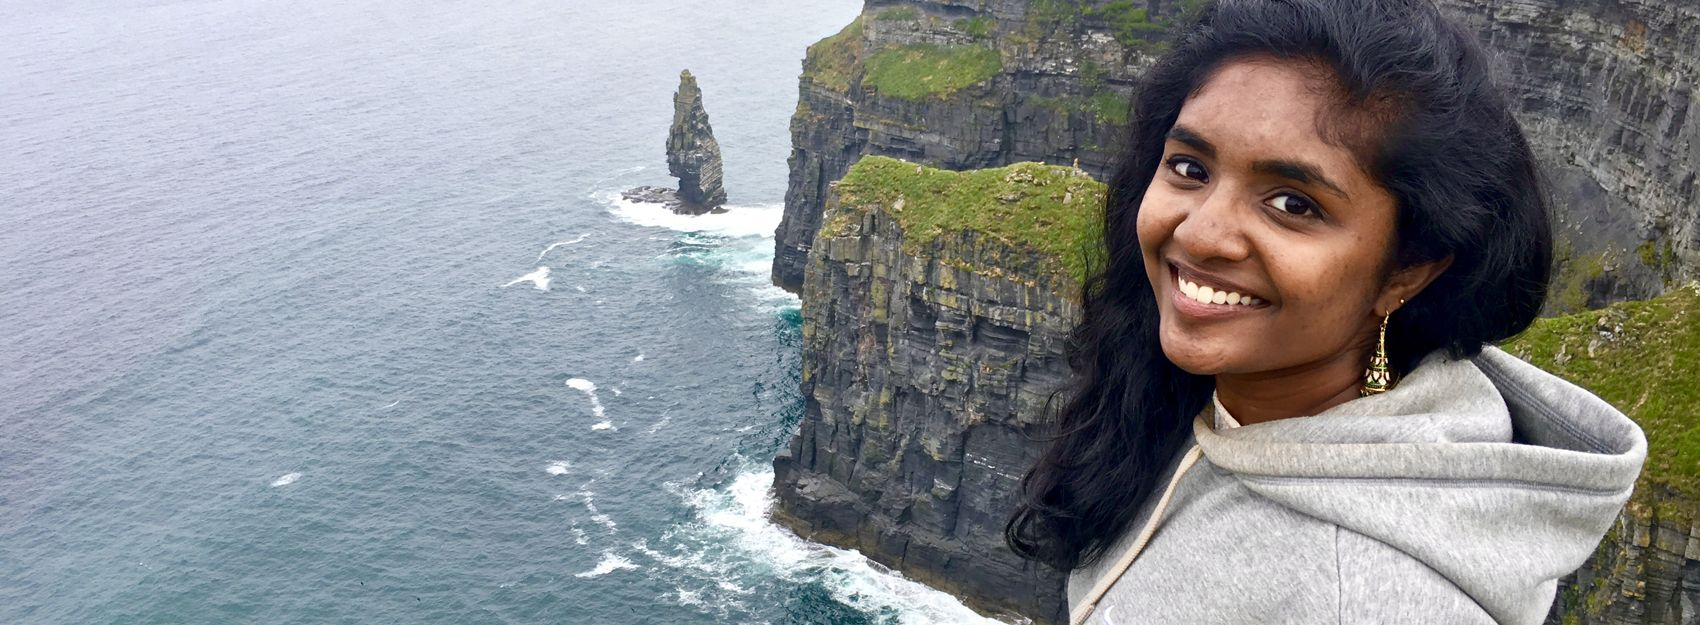 student standing smiling on the cliffs of moher in ireland